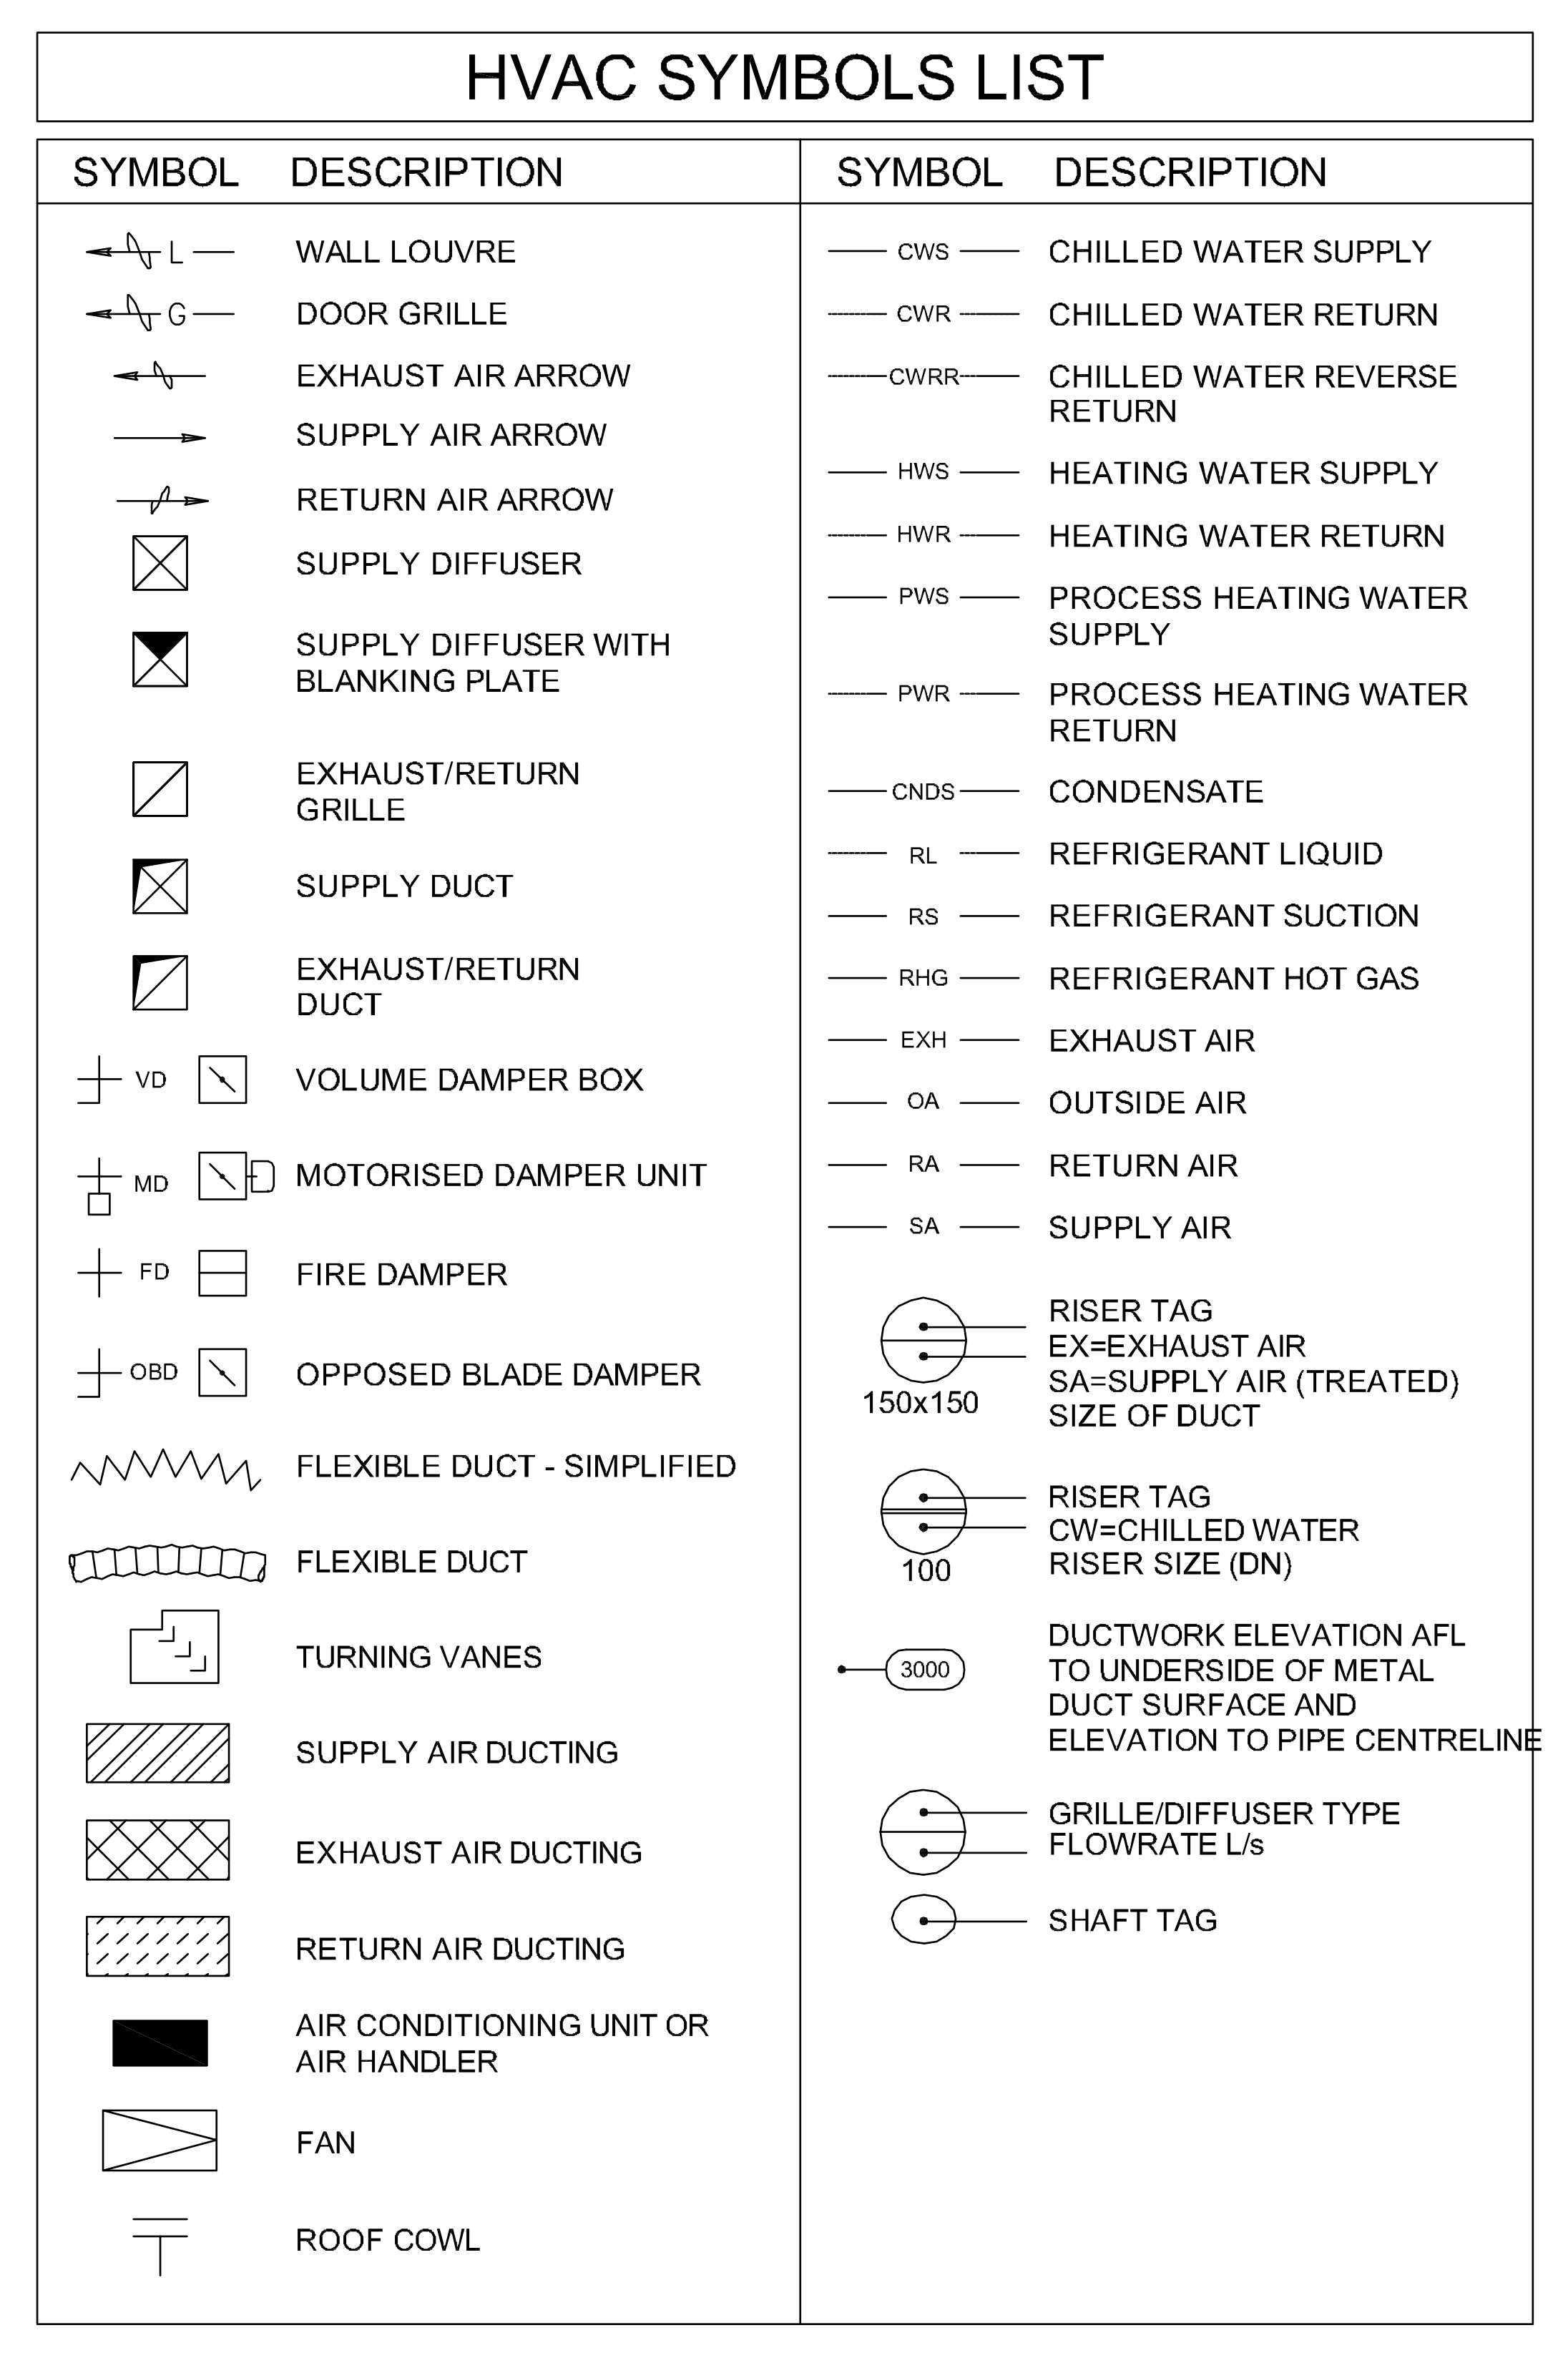 HVAC Symbols List – Free CAD Blocks in DWG file format | Hvac Drawing Symbols Legend |  | Free CAD Blocks in DWG file format - Draftsperson.net